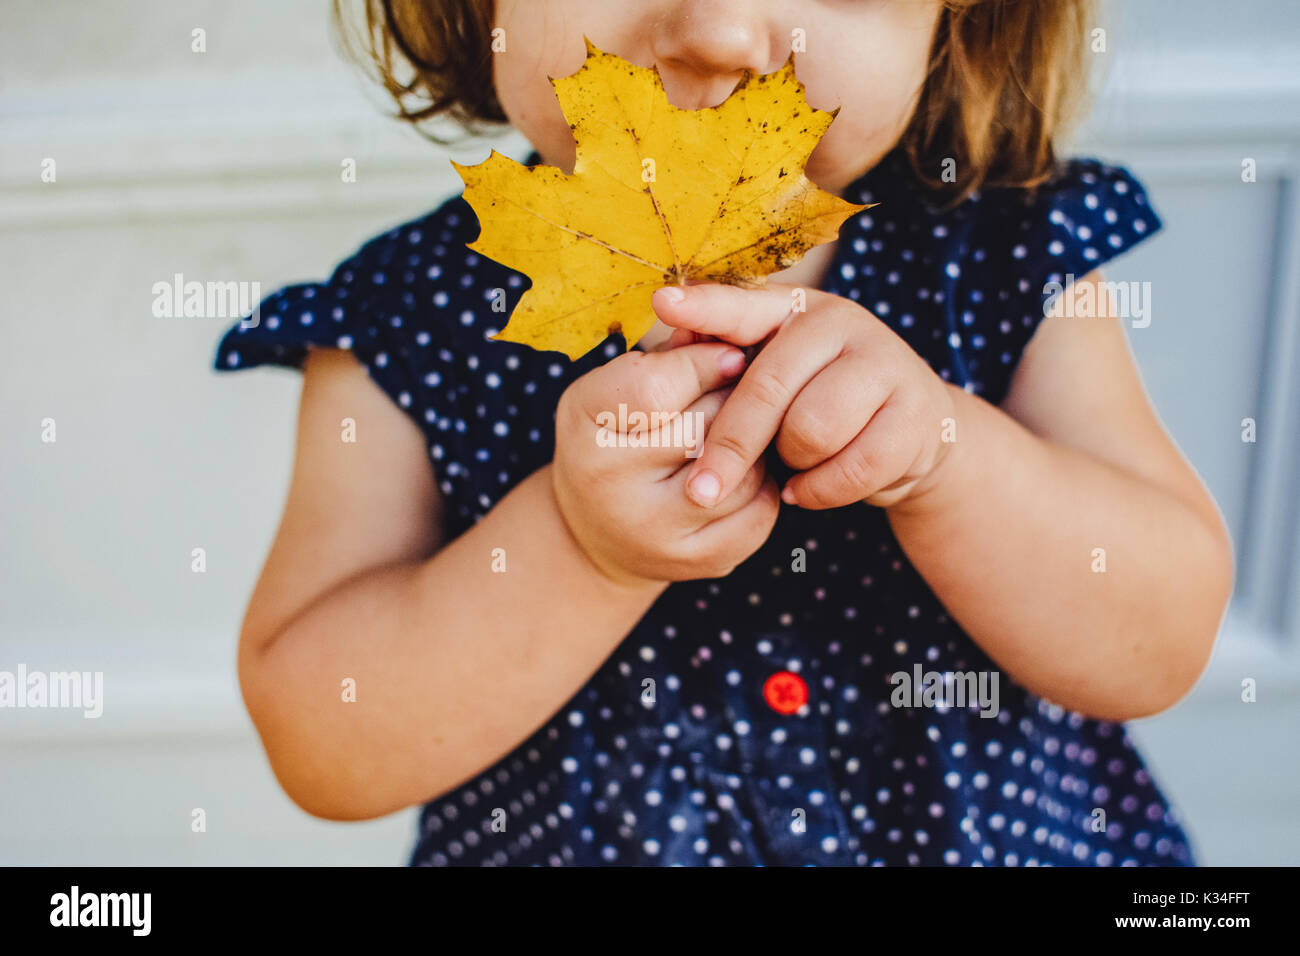 A little girl holds an yellow leaf - Stock Image